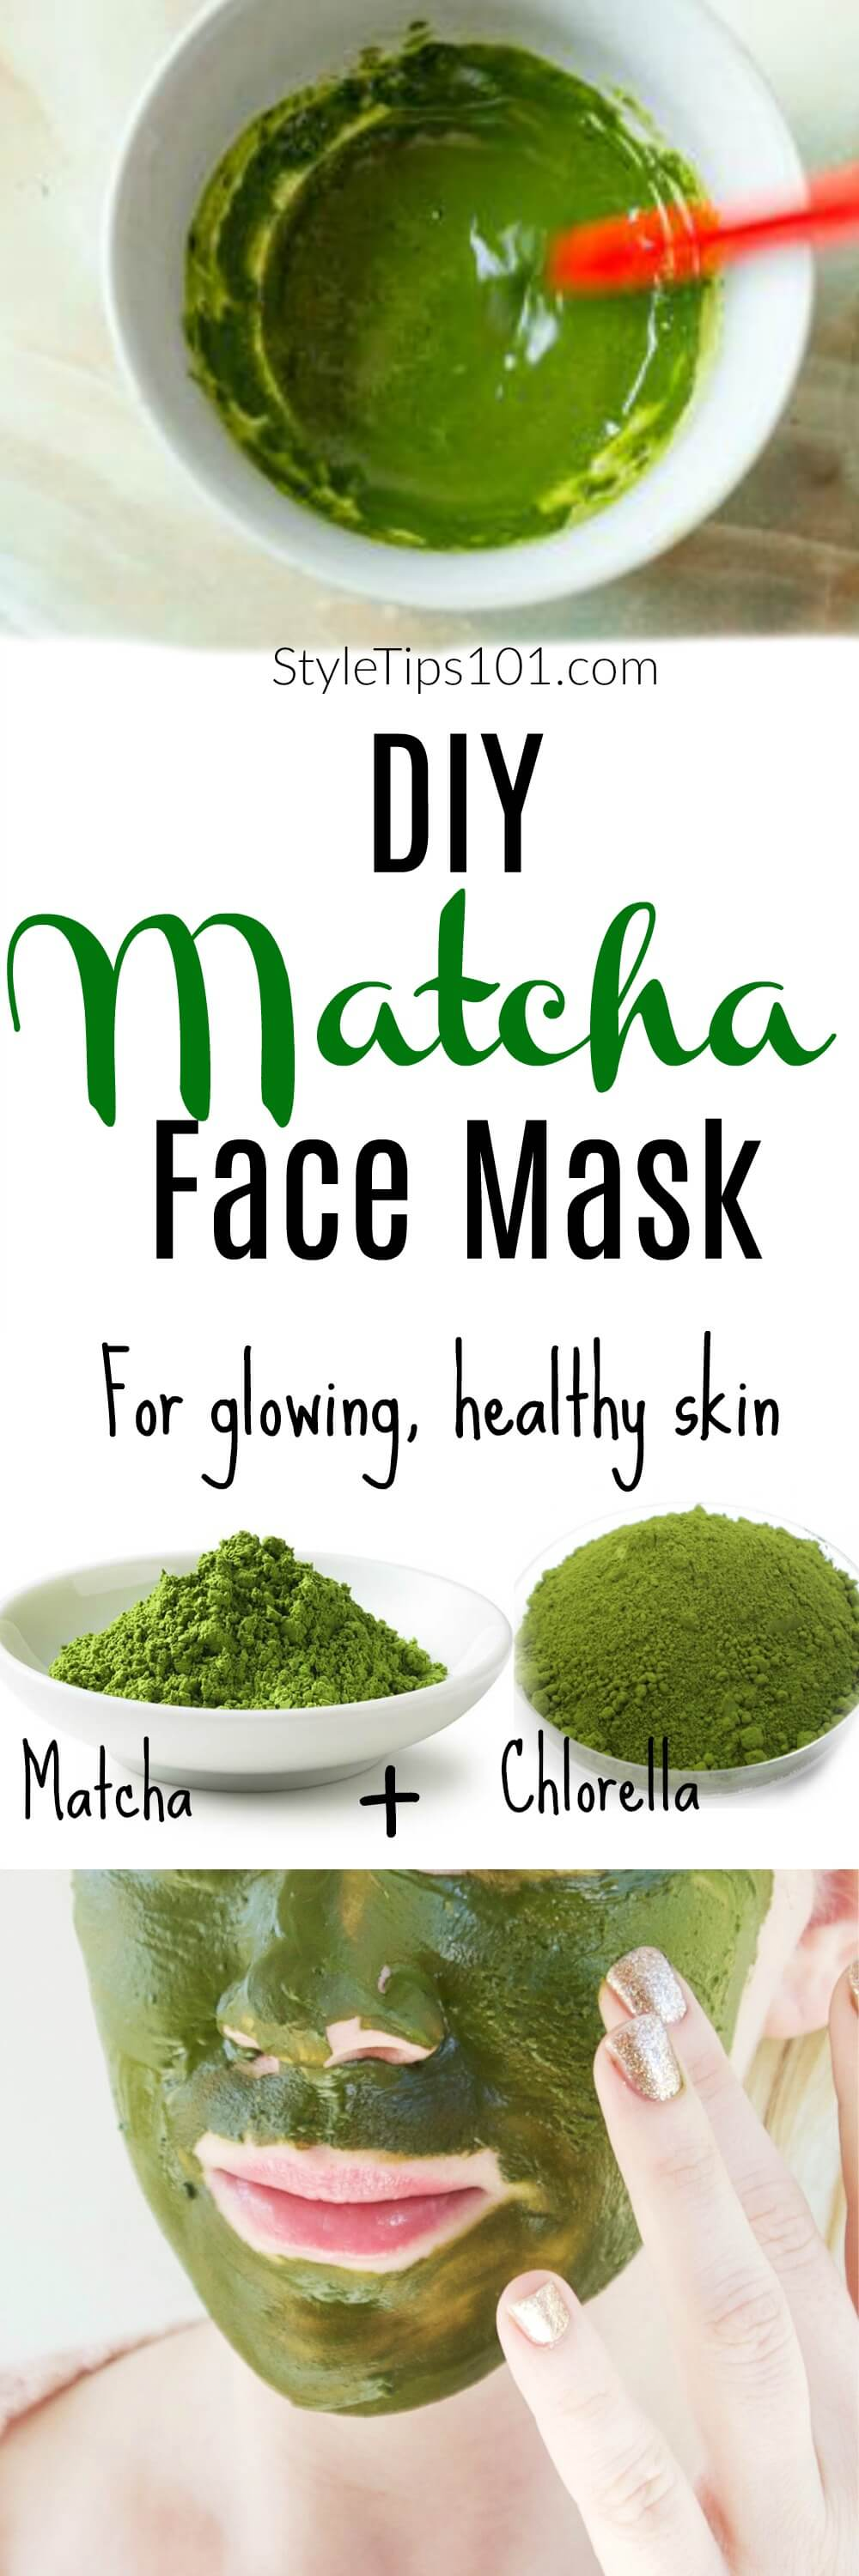 This DIY matcha mask will ensure that you show up with fresh, glowing skin every single time. Use twice a week for best results!